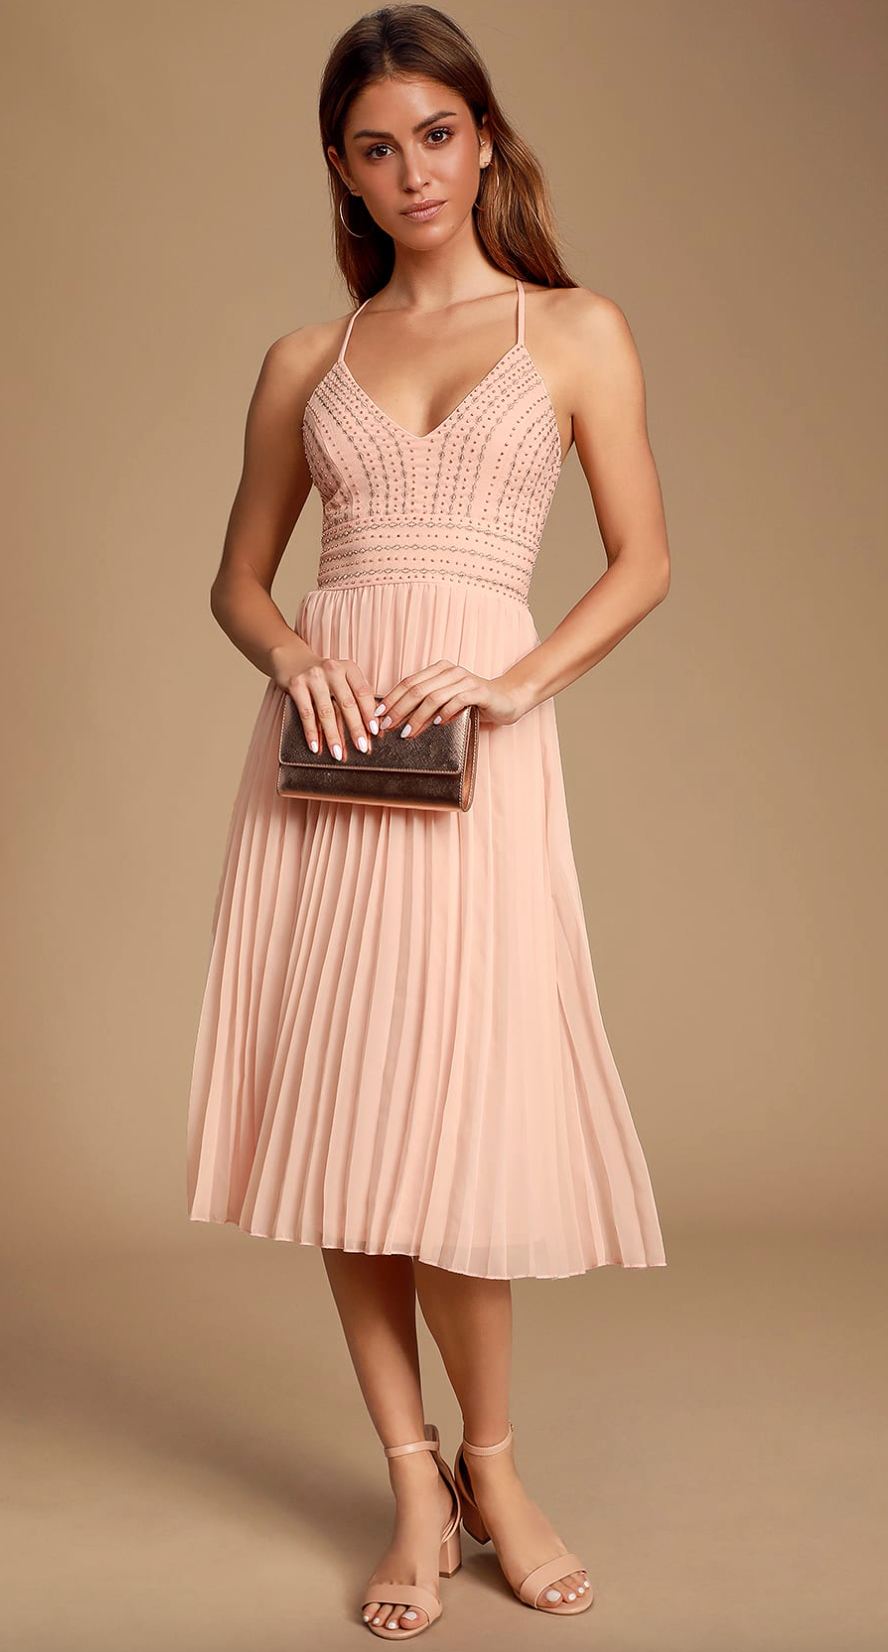 Pretty pink embroidered dress from Lulu's